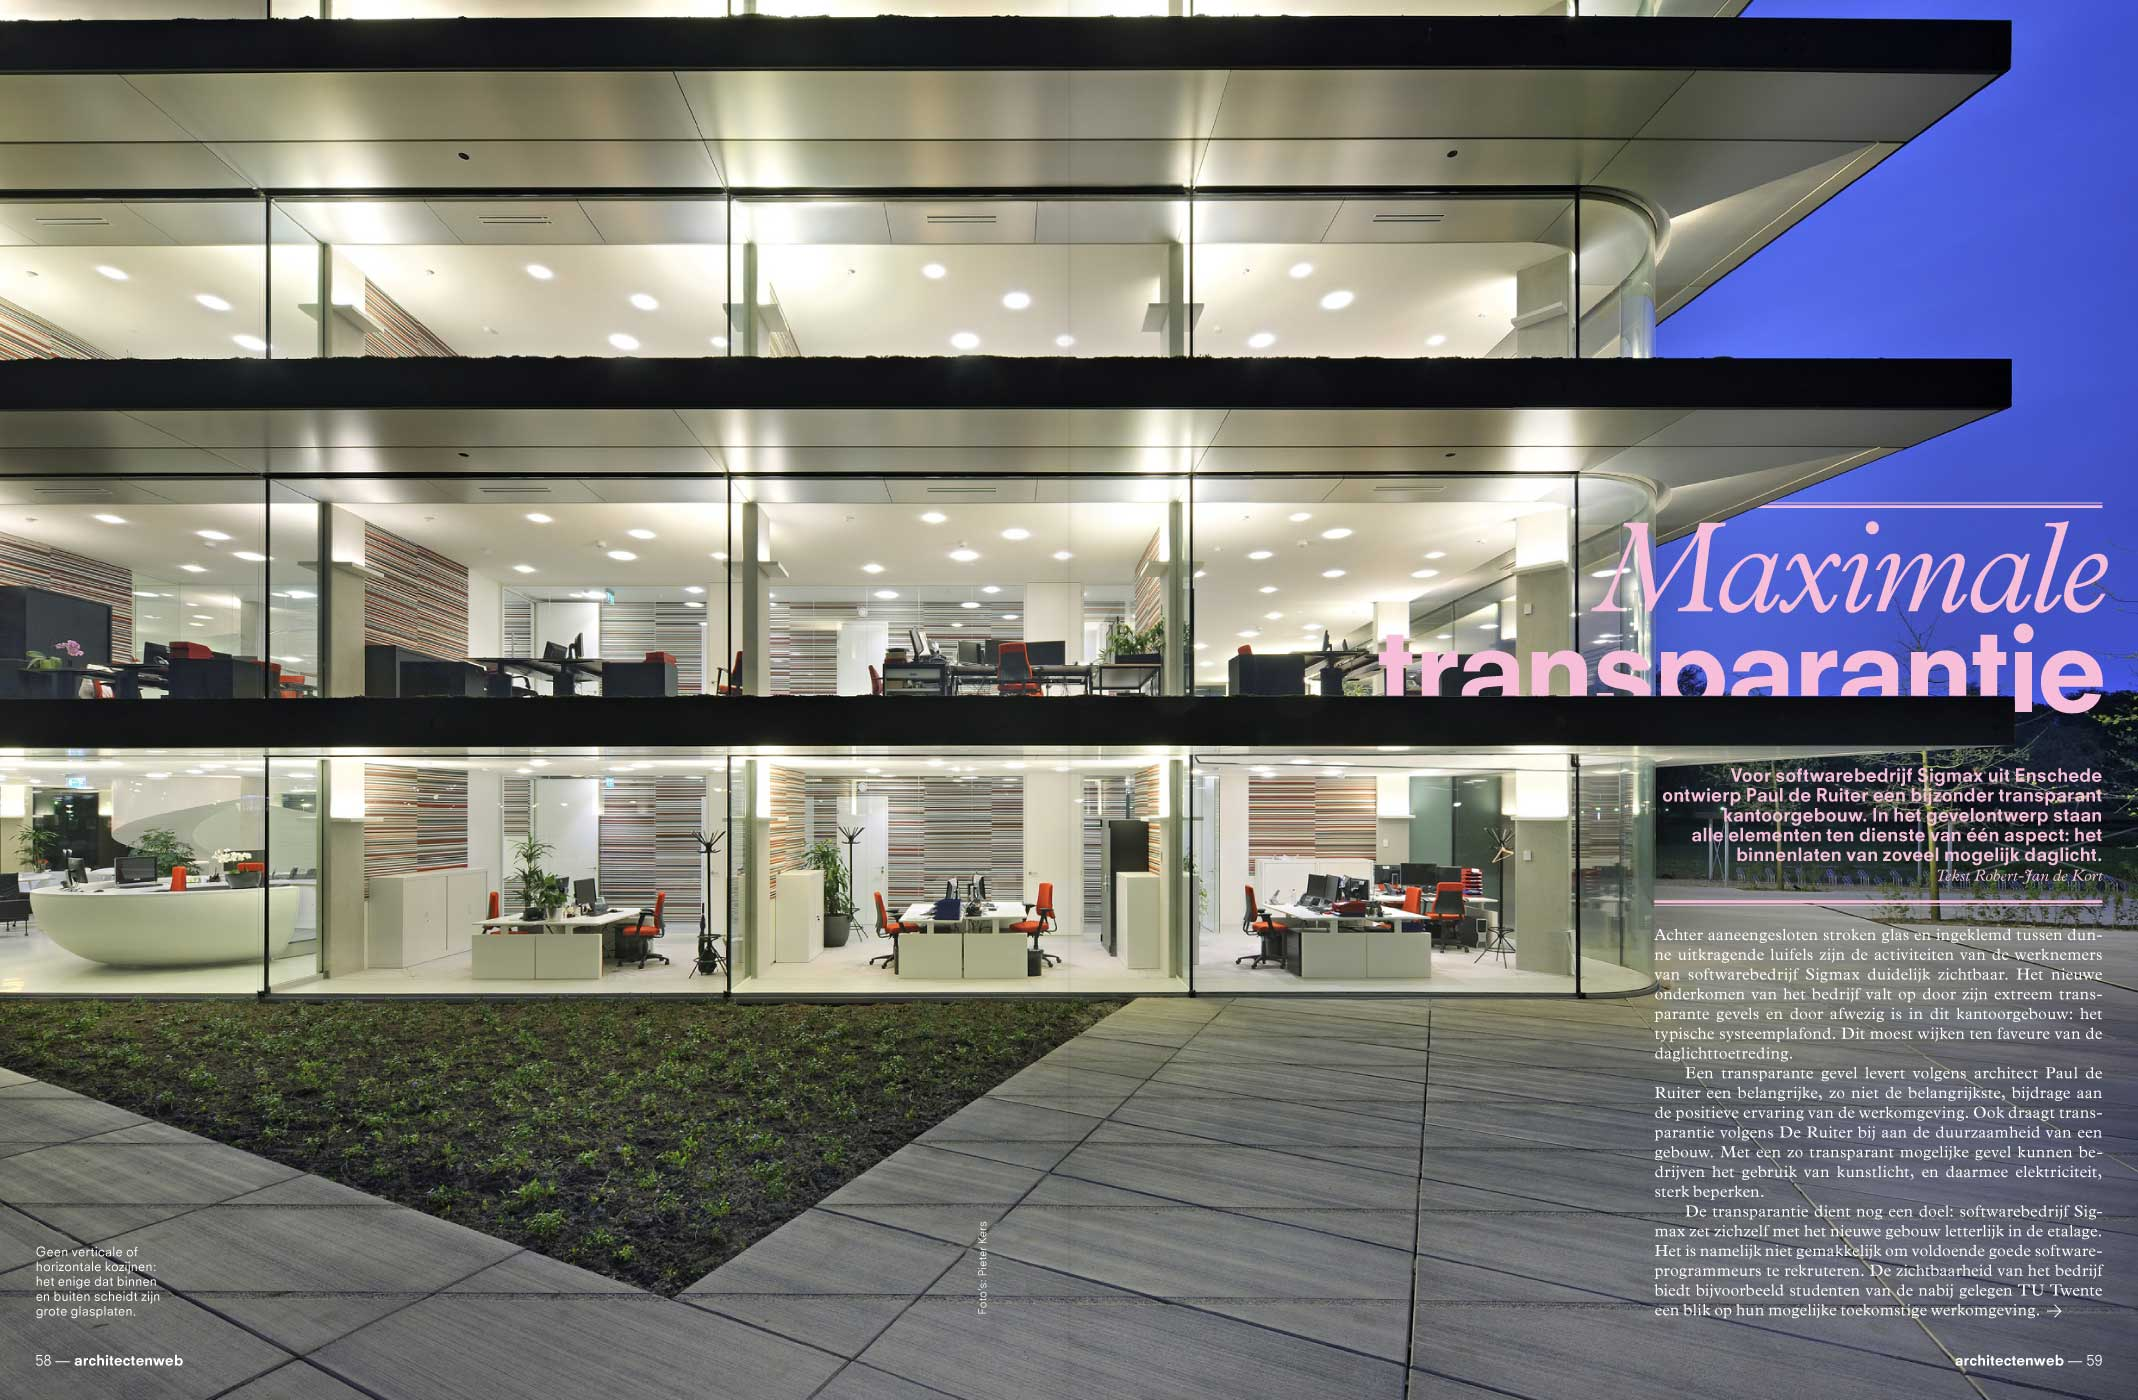 architectenweb, magazine, editorial design, architecture